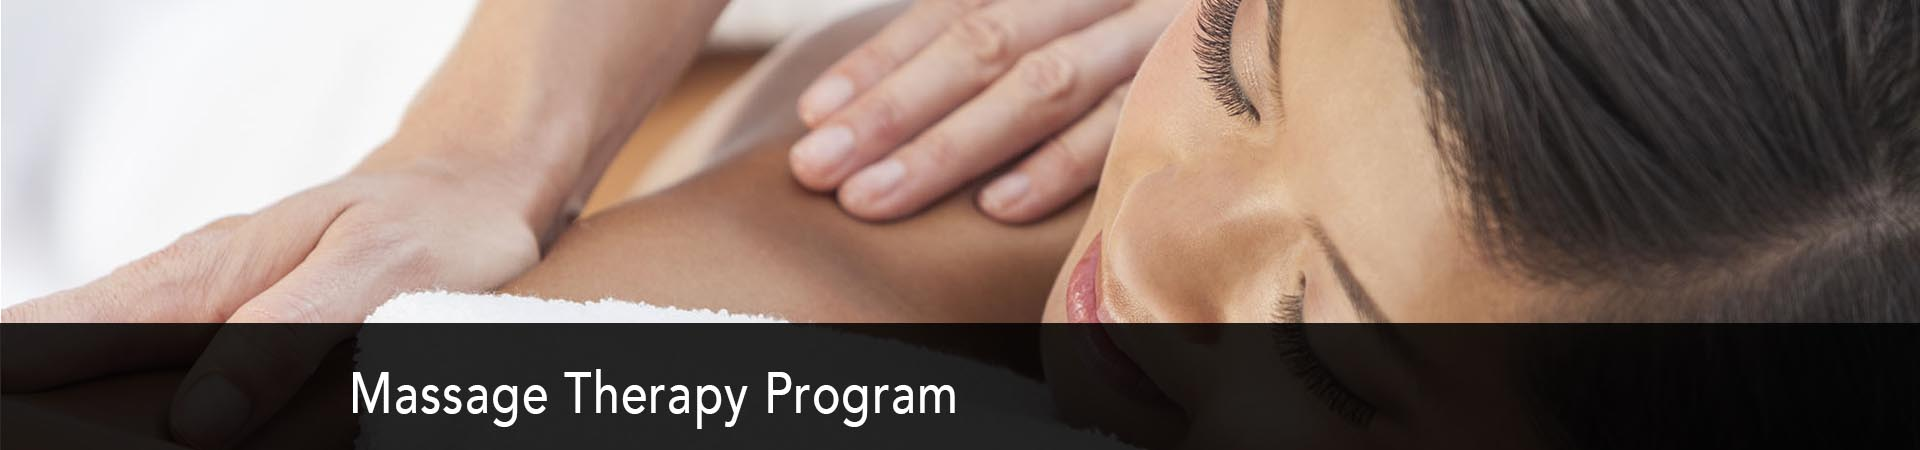 Explore the Massage Therapy Program at NC